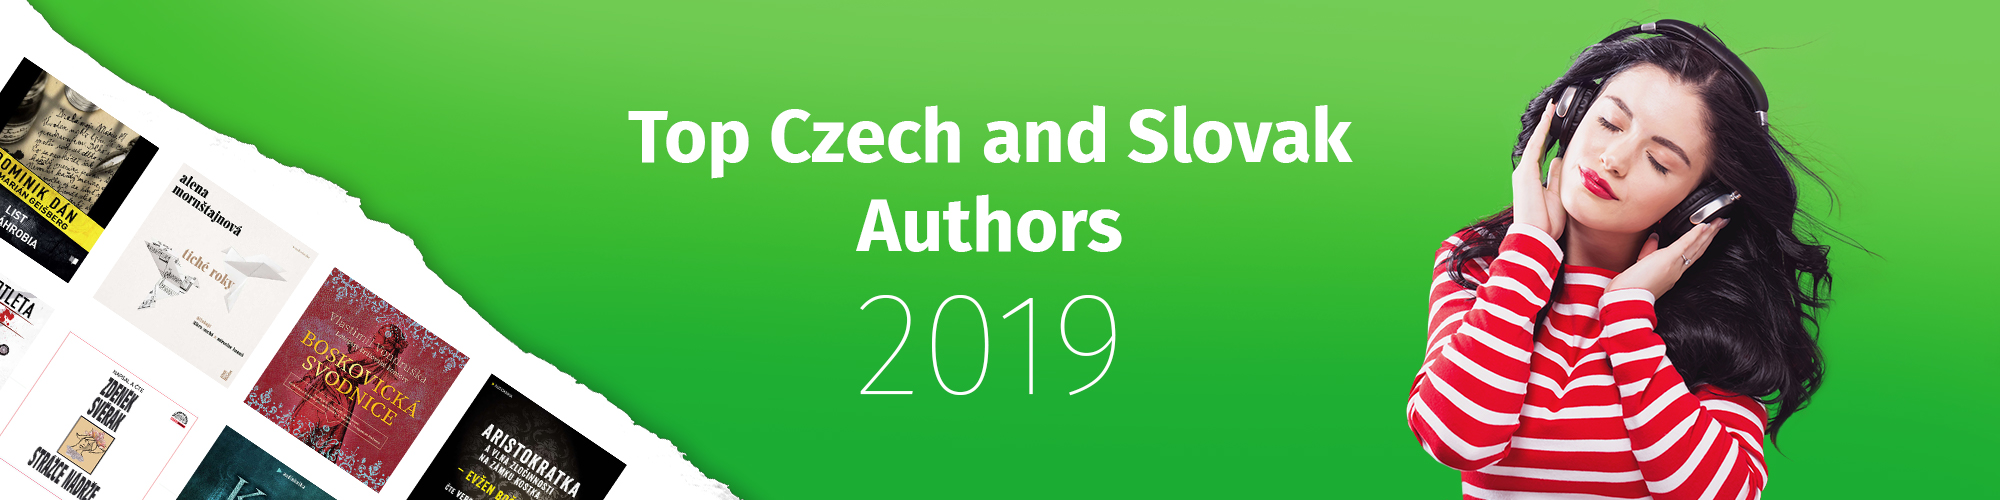 Top Czech and Slovak Authors of 2019